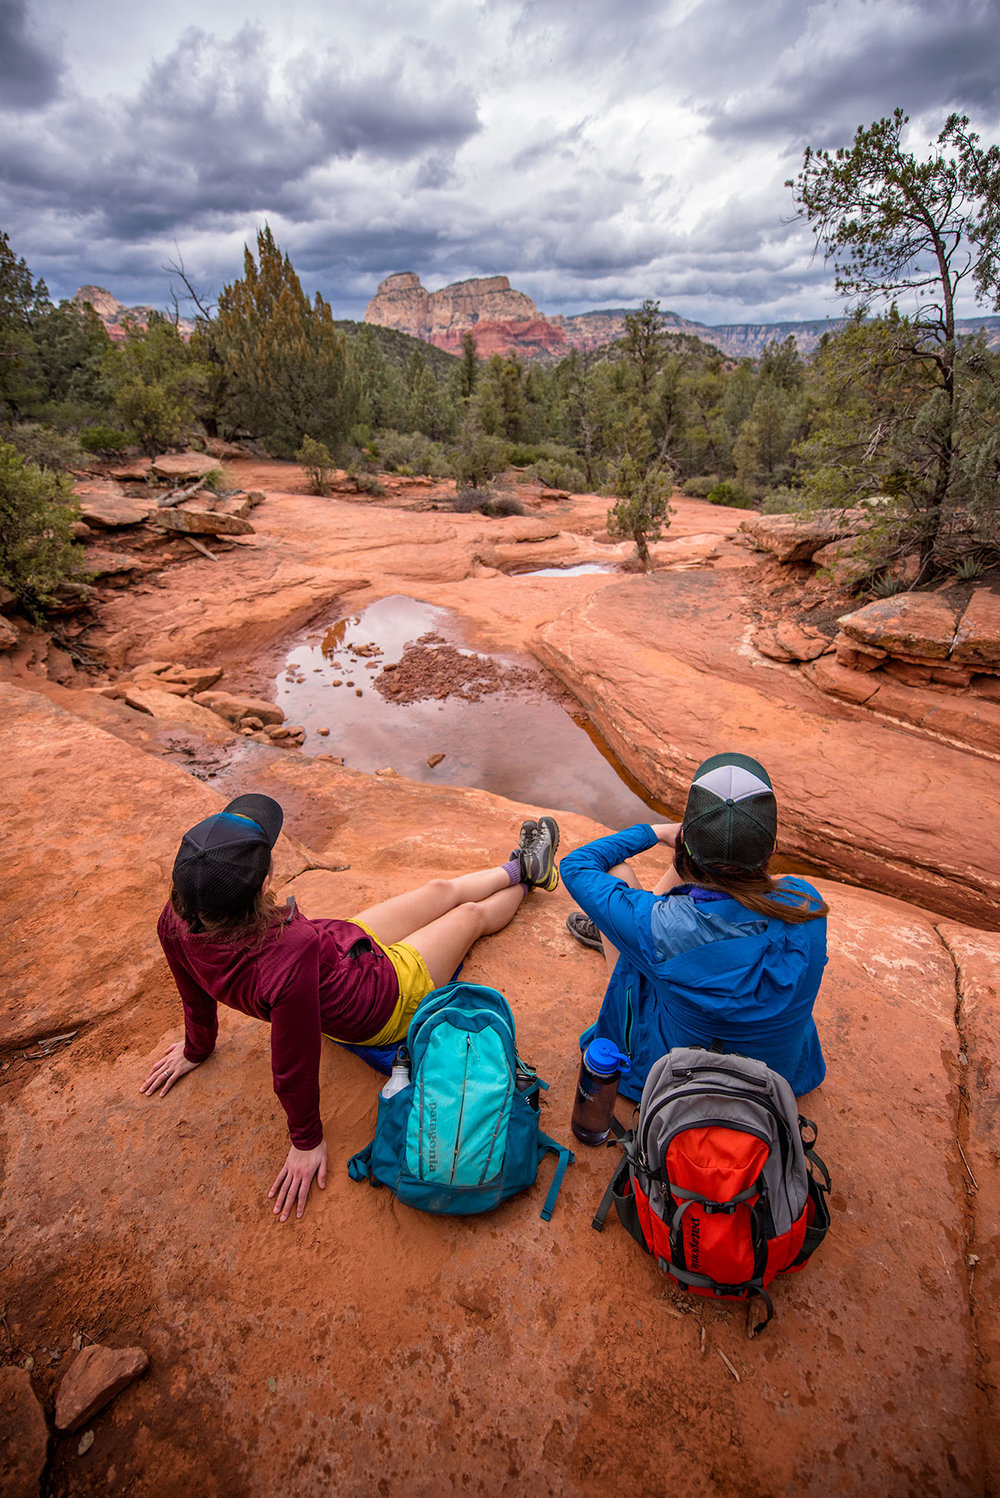 austin-trigg-patagonia-day-pack-arizona-sedona-desert-lifestle-product-backpack-adventure-river-canyon-hang-clouds-weather.jpg